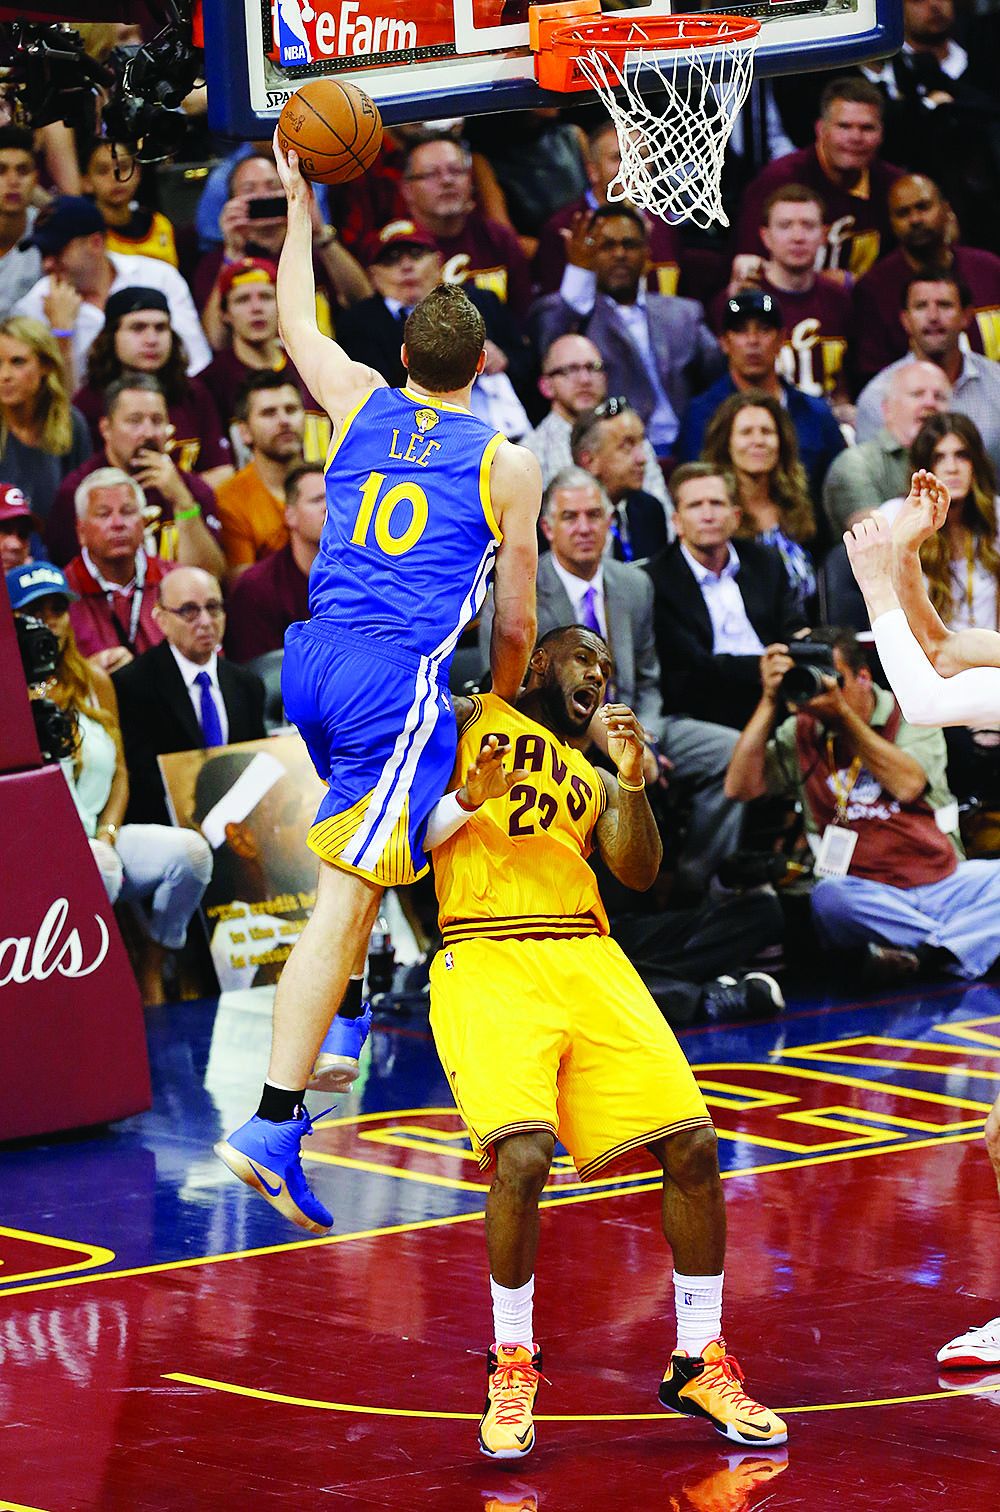 Warriors' David Lee (10), who was benched at the start of the season, will be allowed to seek a new team, according to reports. (AP Photo/Paul Sancya)